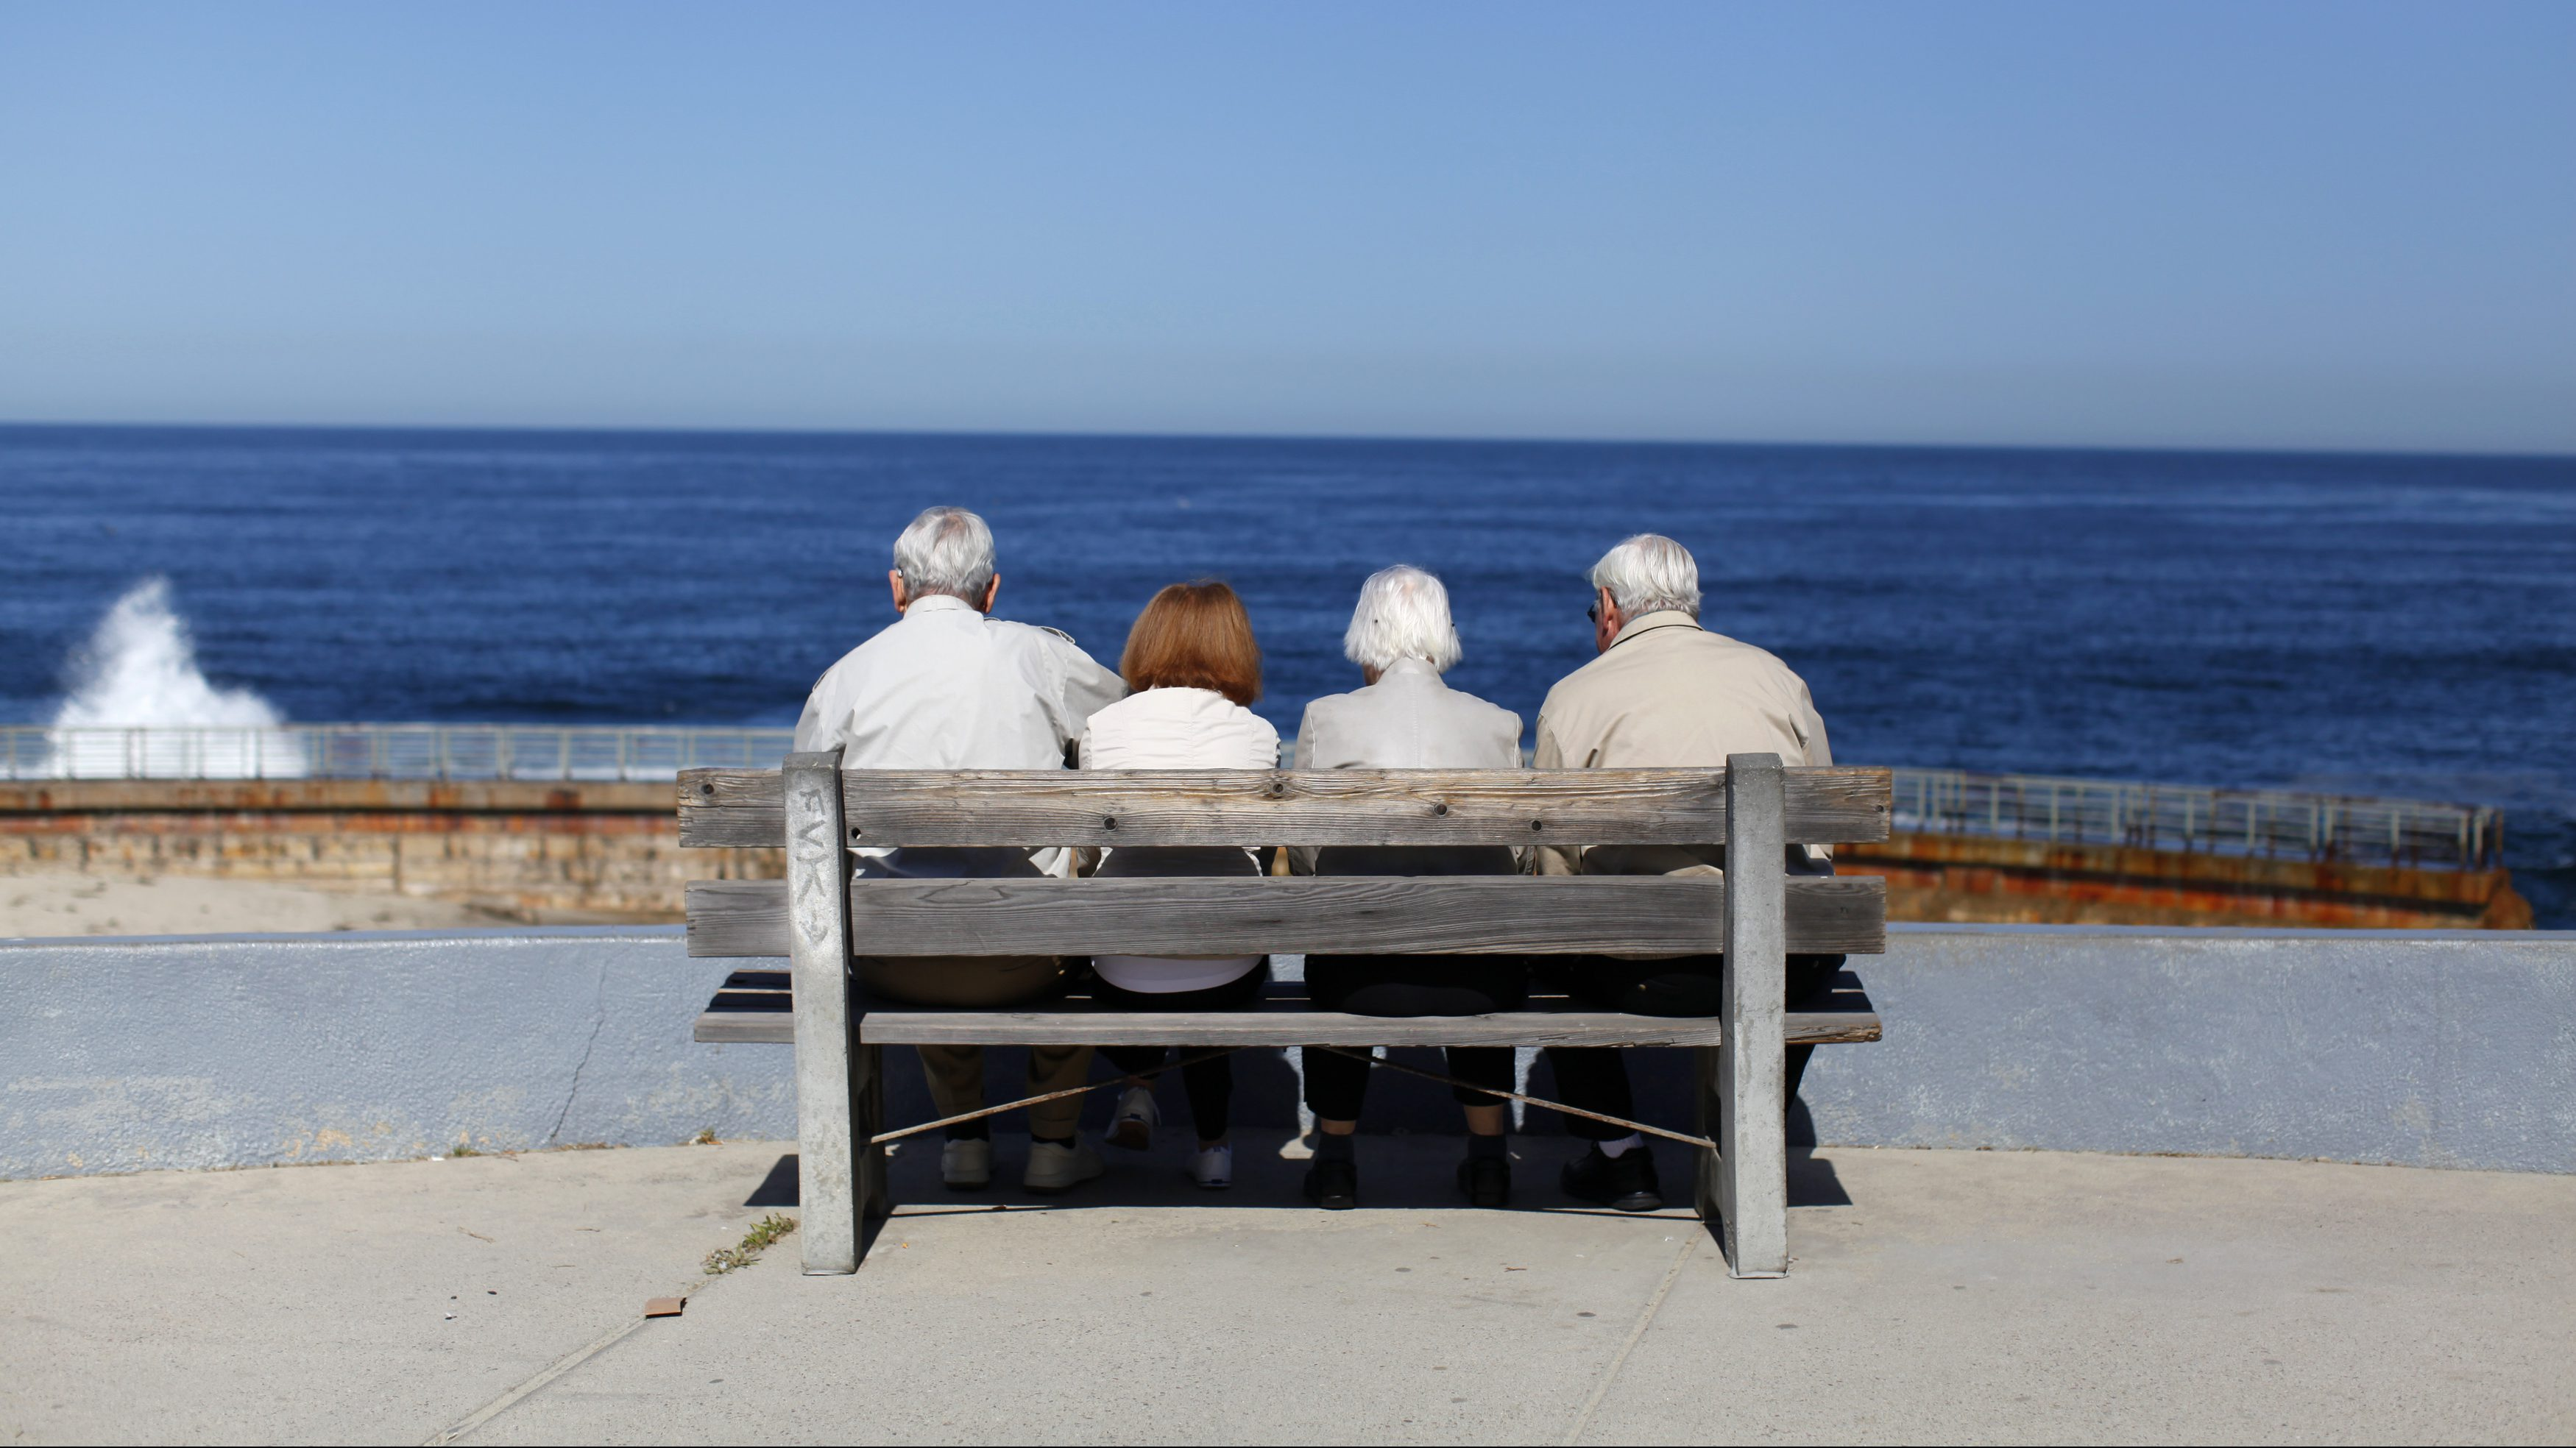 A pair of elderly couples view the ocean and waves along the beach in La Jolla, California March 8, 2012.  REUTERS/Mike Blake   (UNITED STATES - Tags: ENVIRONMENT SOCIETY TPX IMAGES OF THE DAY) - RTR2Z1YY